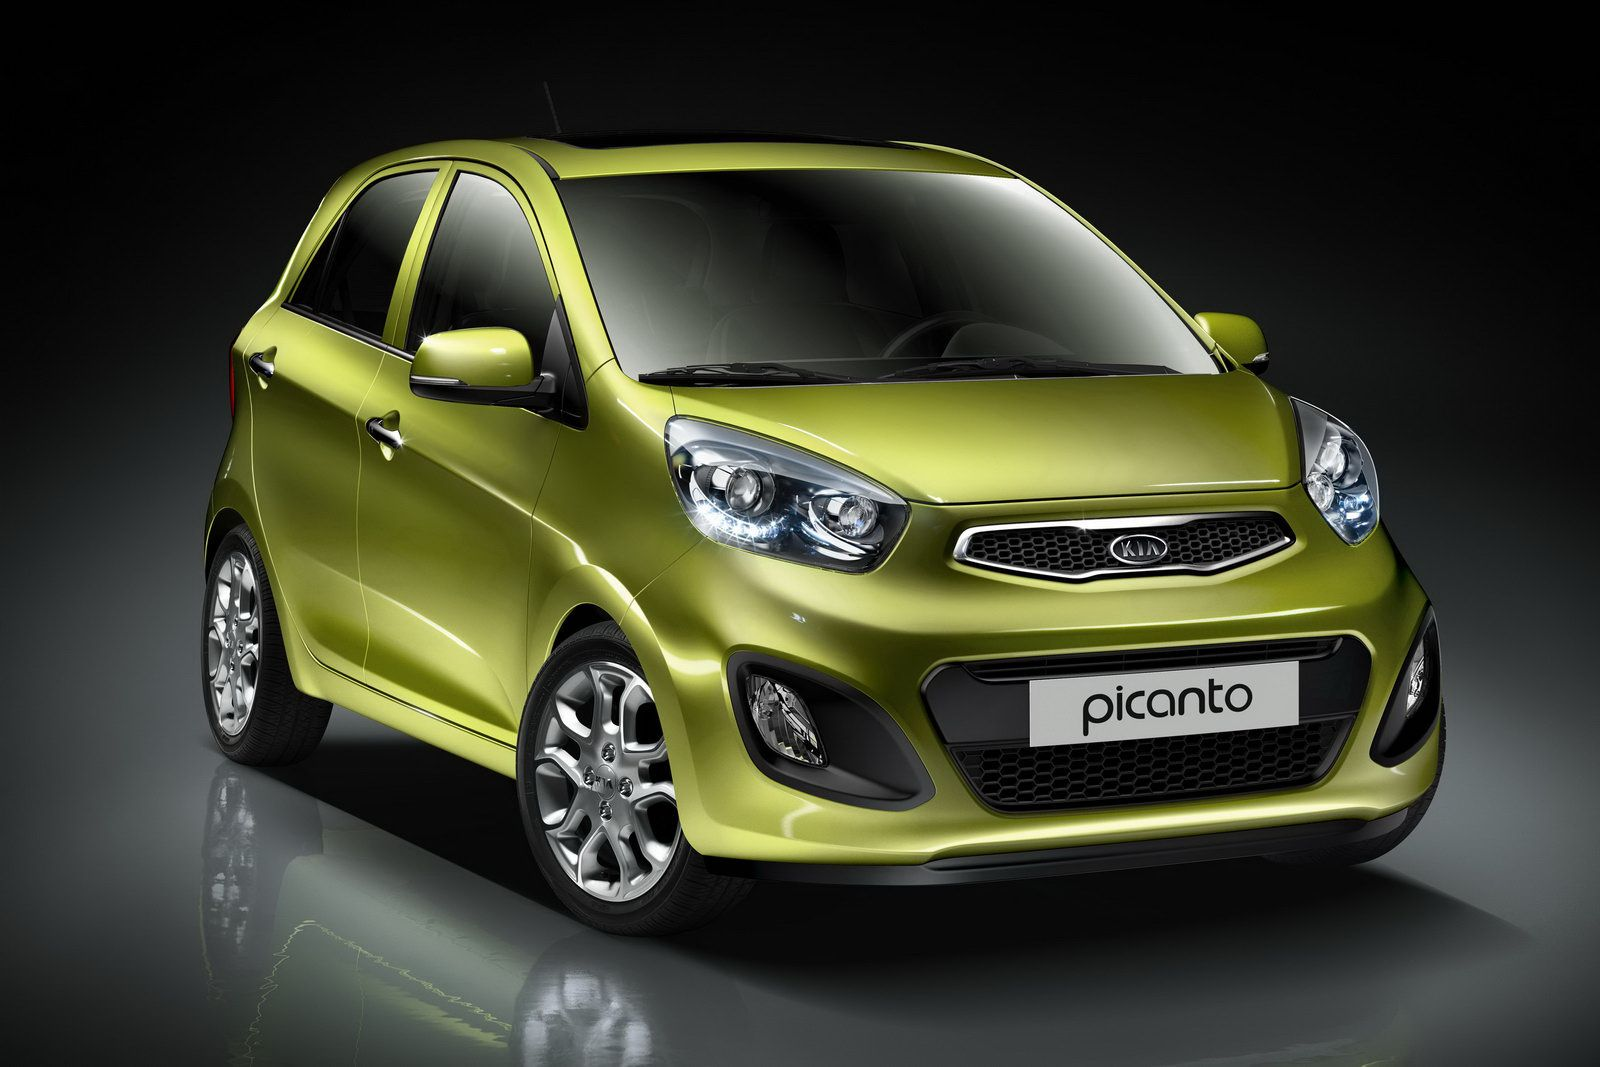 The Kia Picanto. We love this car. Find out more about the